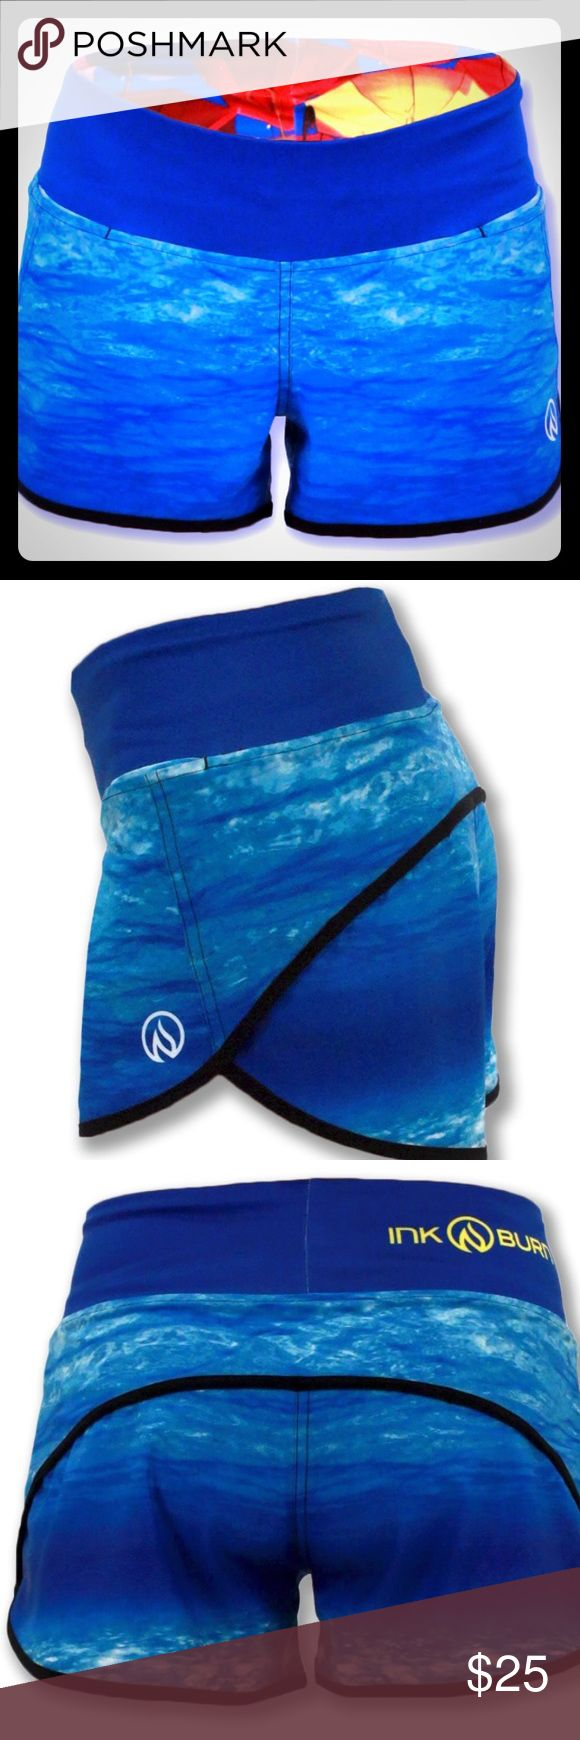 InknBurn Water Shorts! Dry I.C.E. Super-Light, 4 Way Stretch Fabric Shorts. Super Comfy Moisture Wicking Panty. Wear 2-Way Waistband: Up for Flat Look or Fold Down for a Low Cut Look. Two Hidden Front Pockets (Big enough for an iPhone 6) Vibrant Lasting Color. Flat Seamed with SeamSoft Thread for Chafe Resistance. 100 Mile Ultra Tested InknBurn Shorts